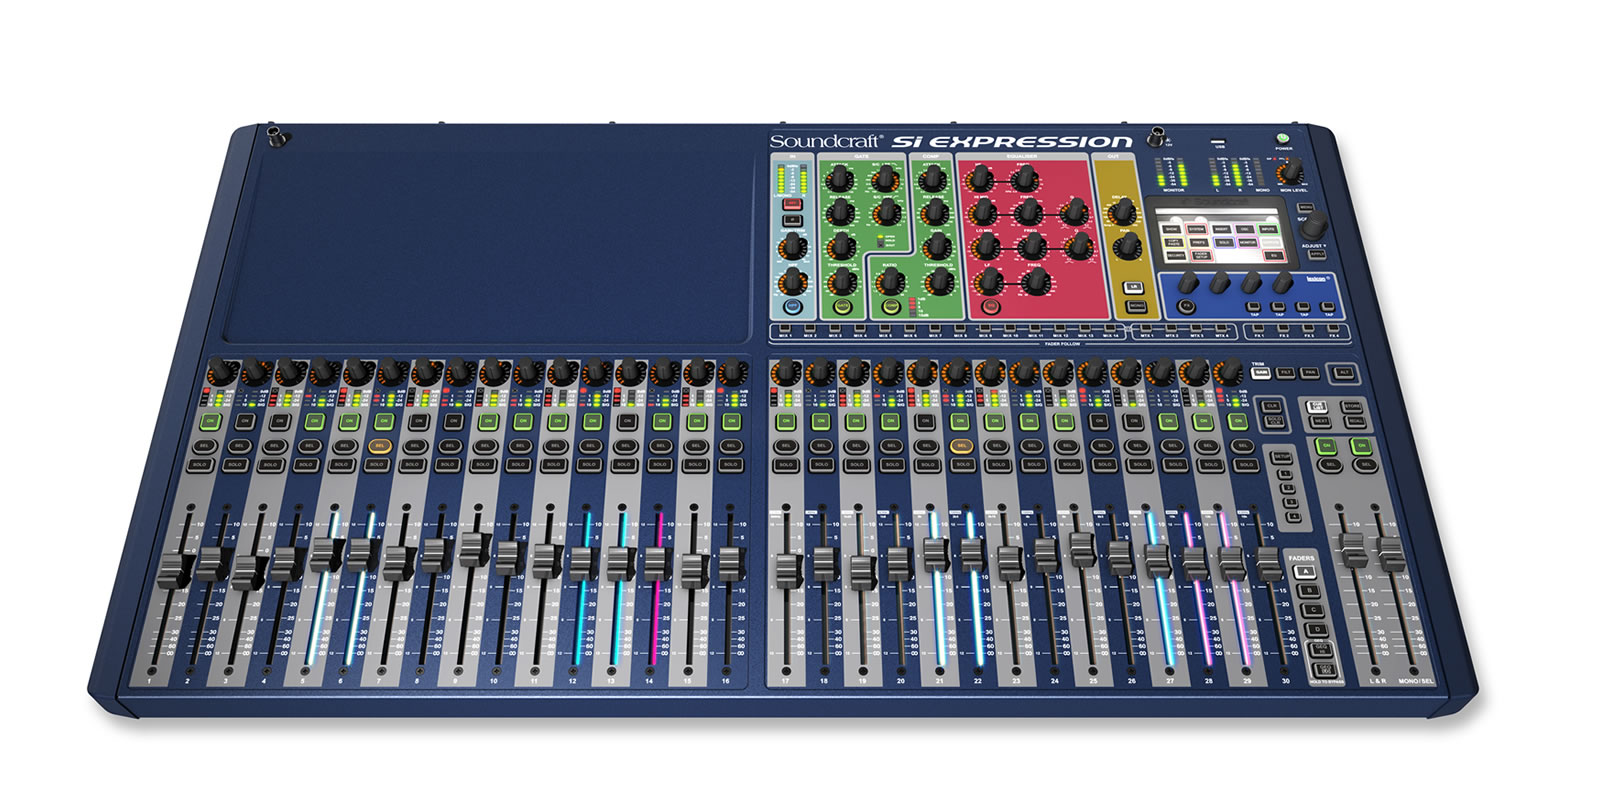 Si Expression 3 Soundcraft Professional Audio Mixers